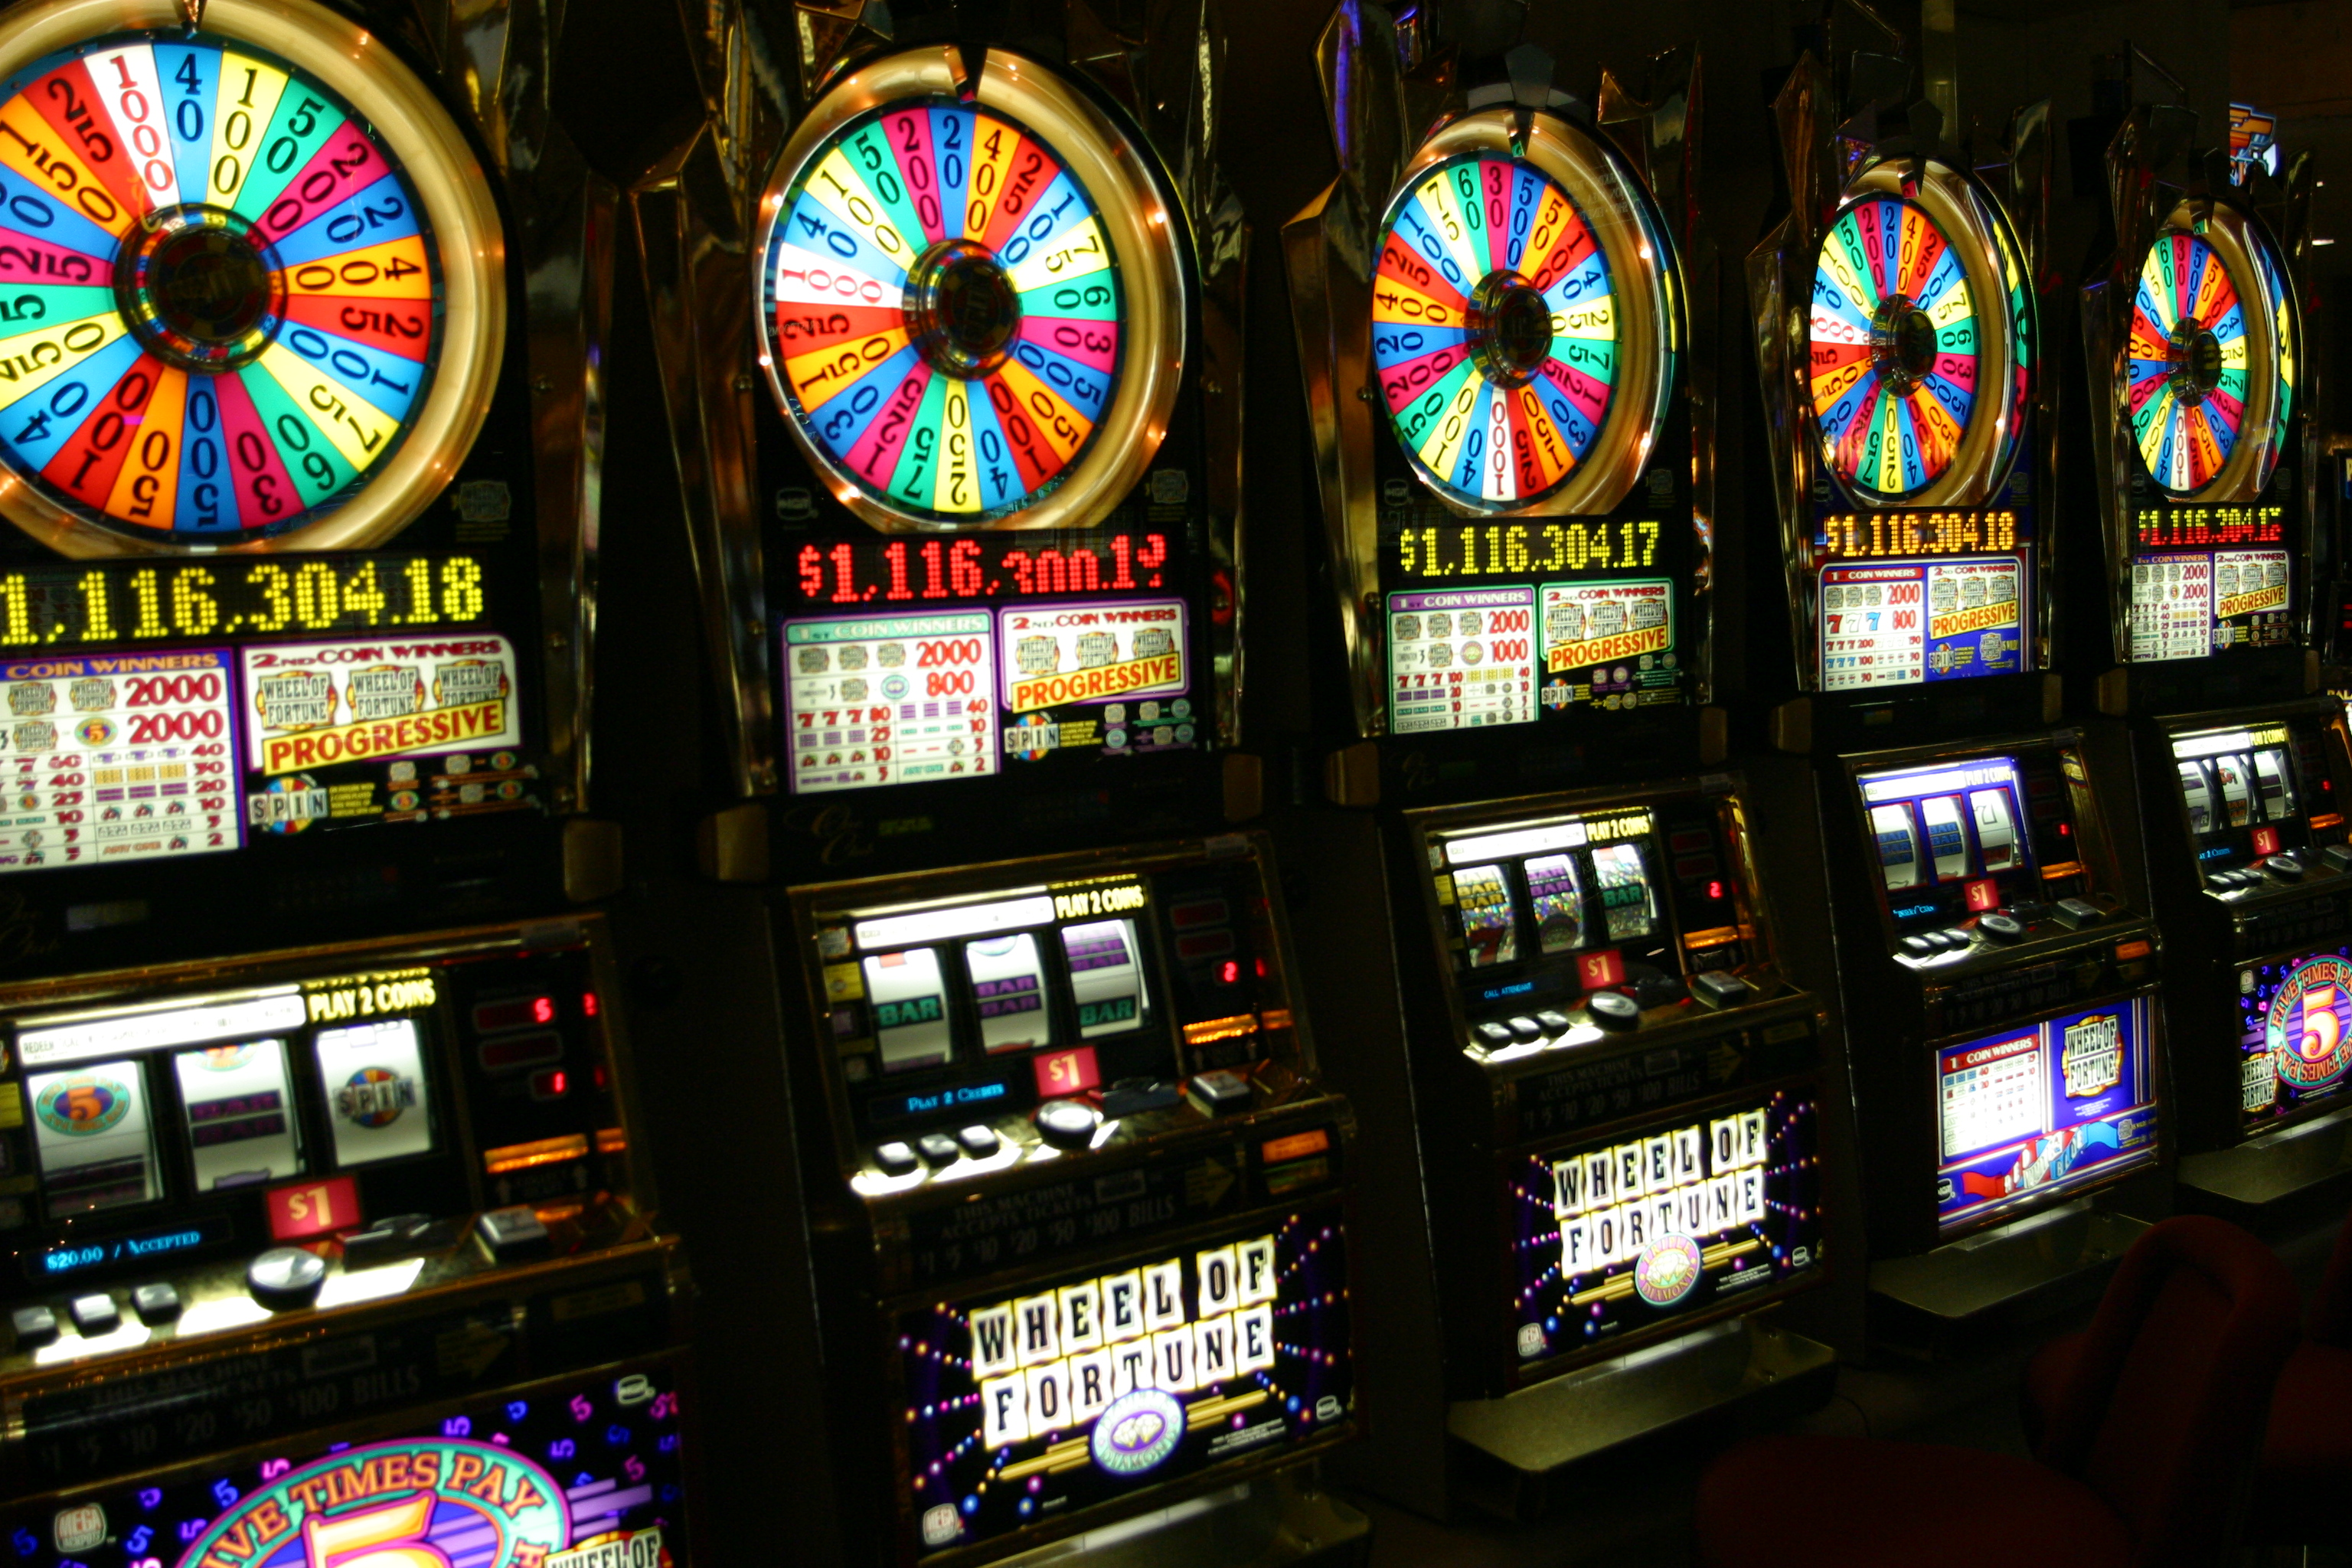 penny slot machines uk